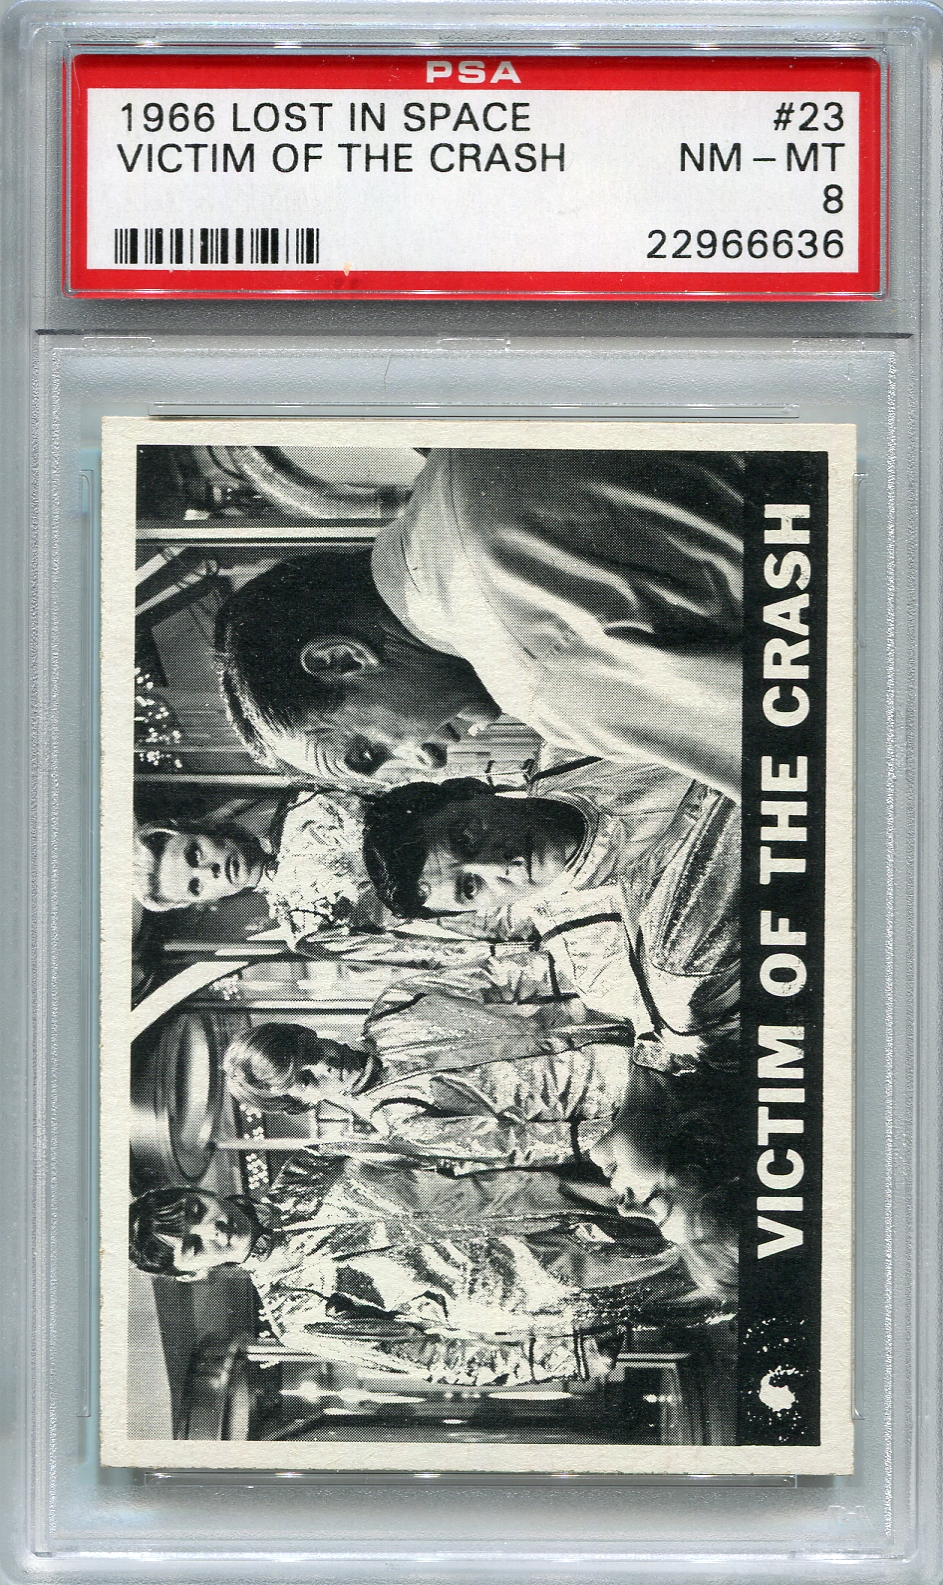 1966 Lost In Space - Victim Of The Crash #23 PSA 8 NM-MT